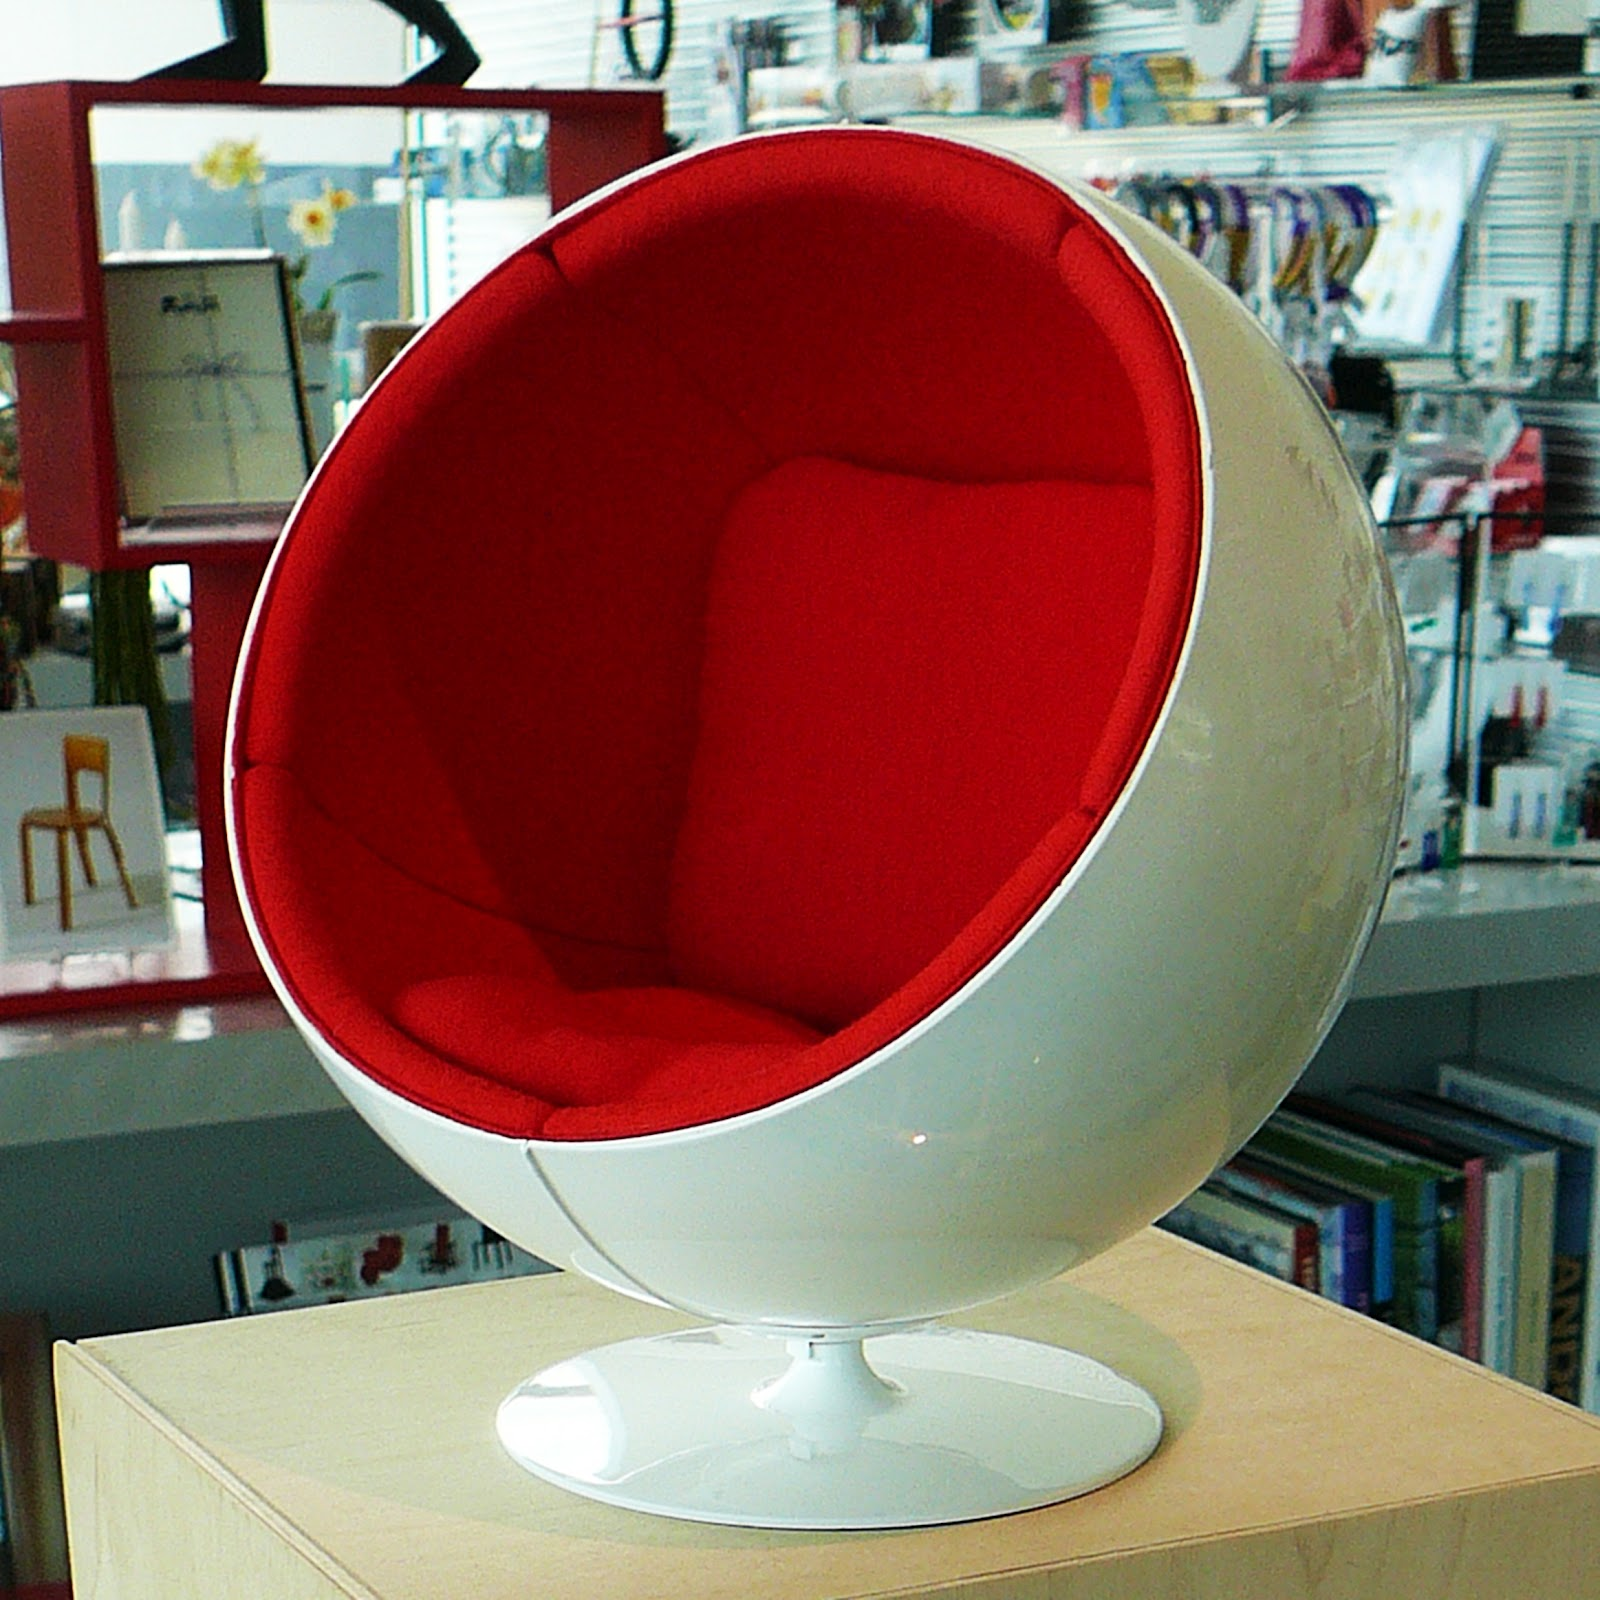 Tampa Daily The Ball Chair In Miniature